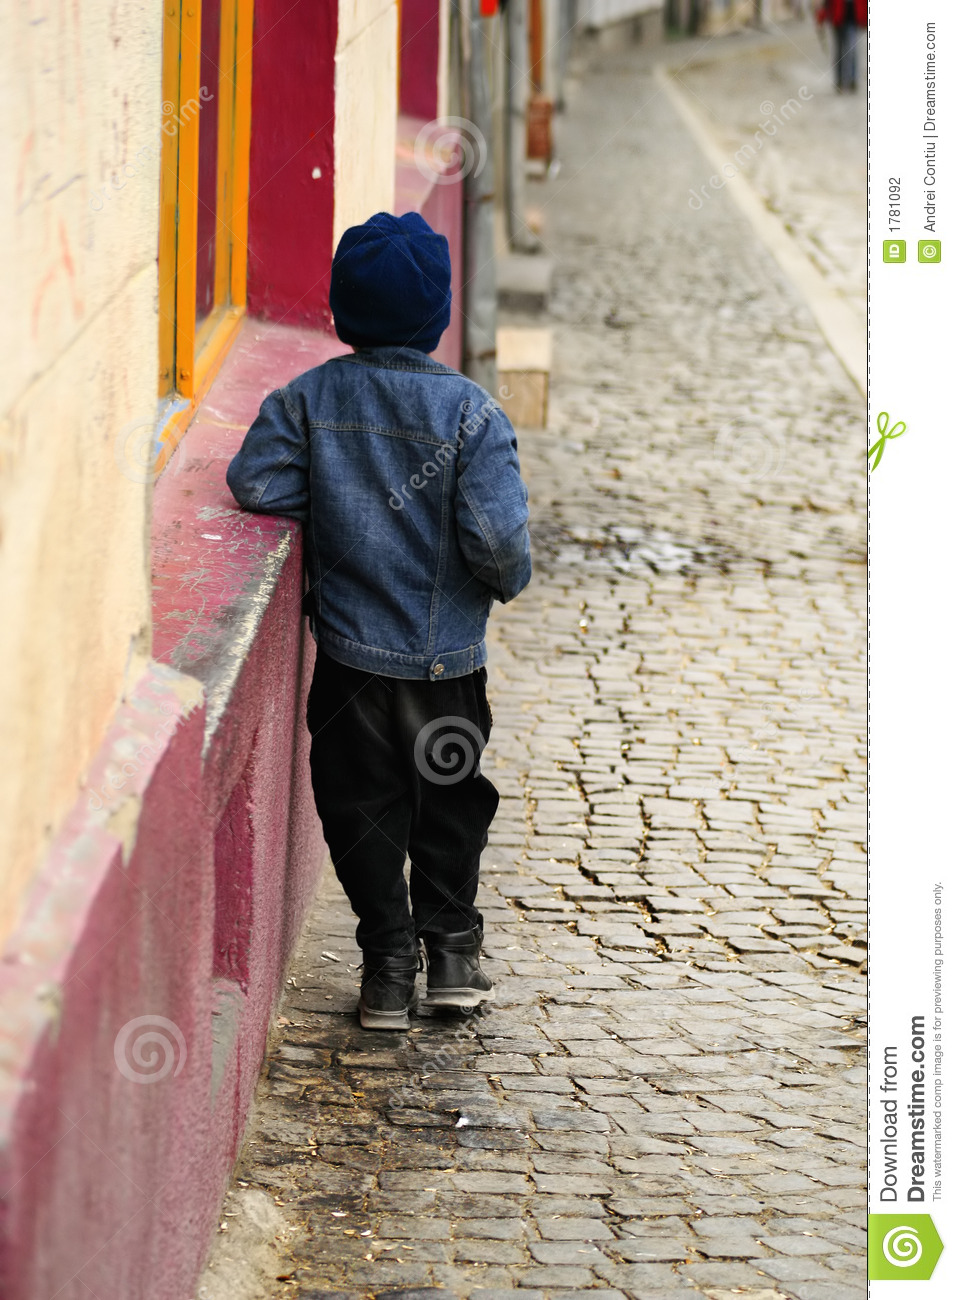 Lonely And Depressed >> Abandoned Child stock photo. Image of despondent, alone - 1781092